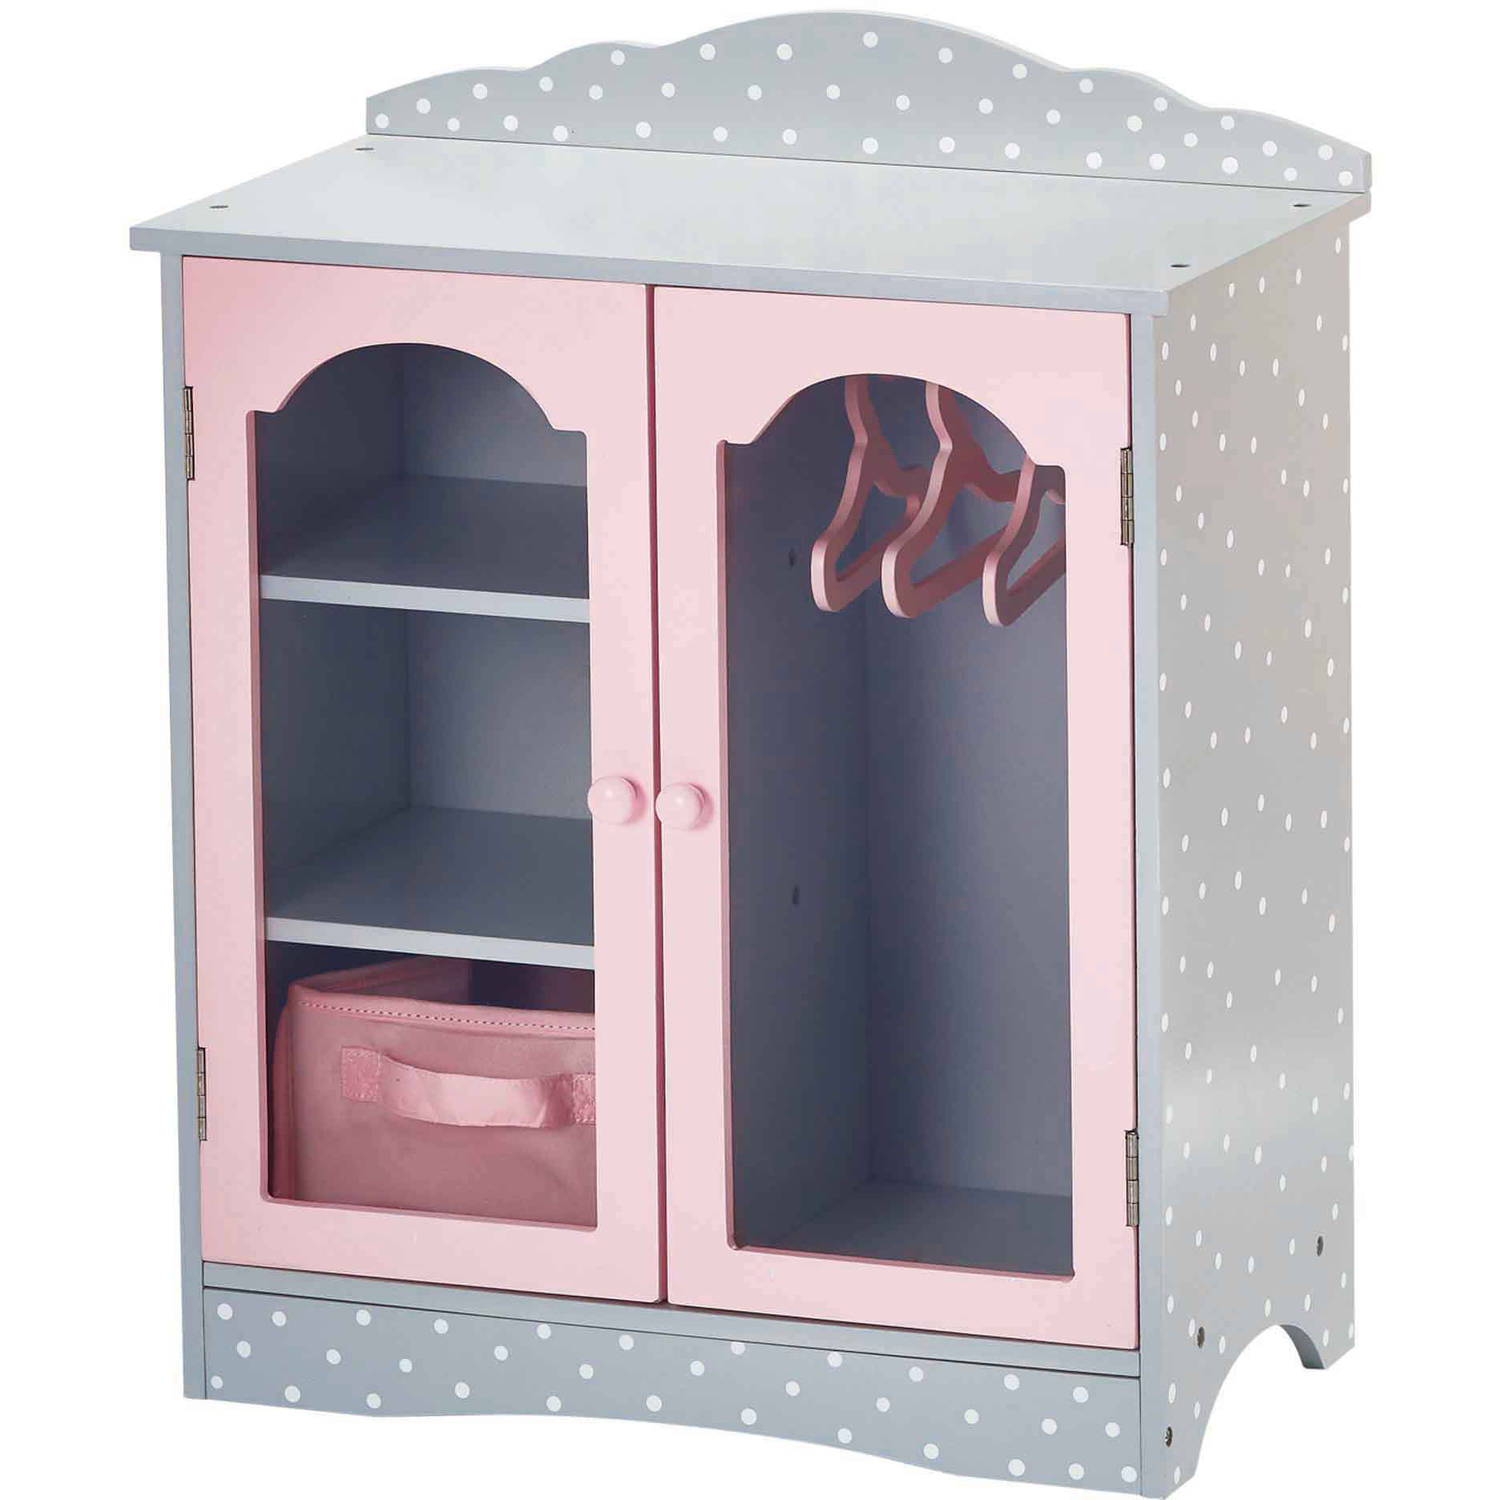 Olivia's Little World 18 inch Doll Furniture Fancy Wooden Closet with 3 Hangers and 1 Cubby (Grey Polka Dots) by Teamson